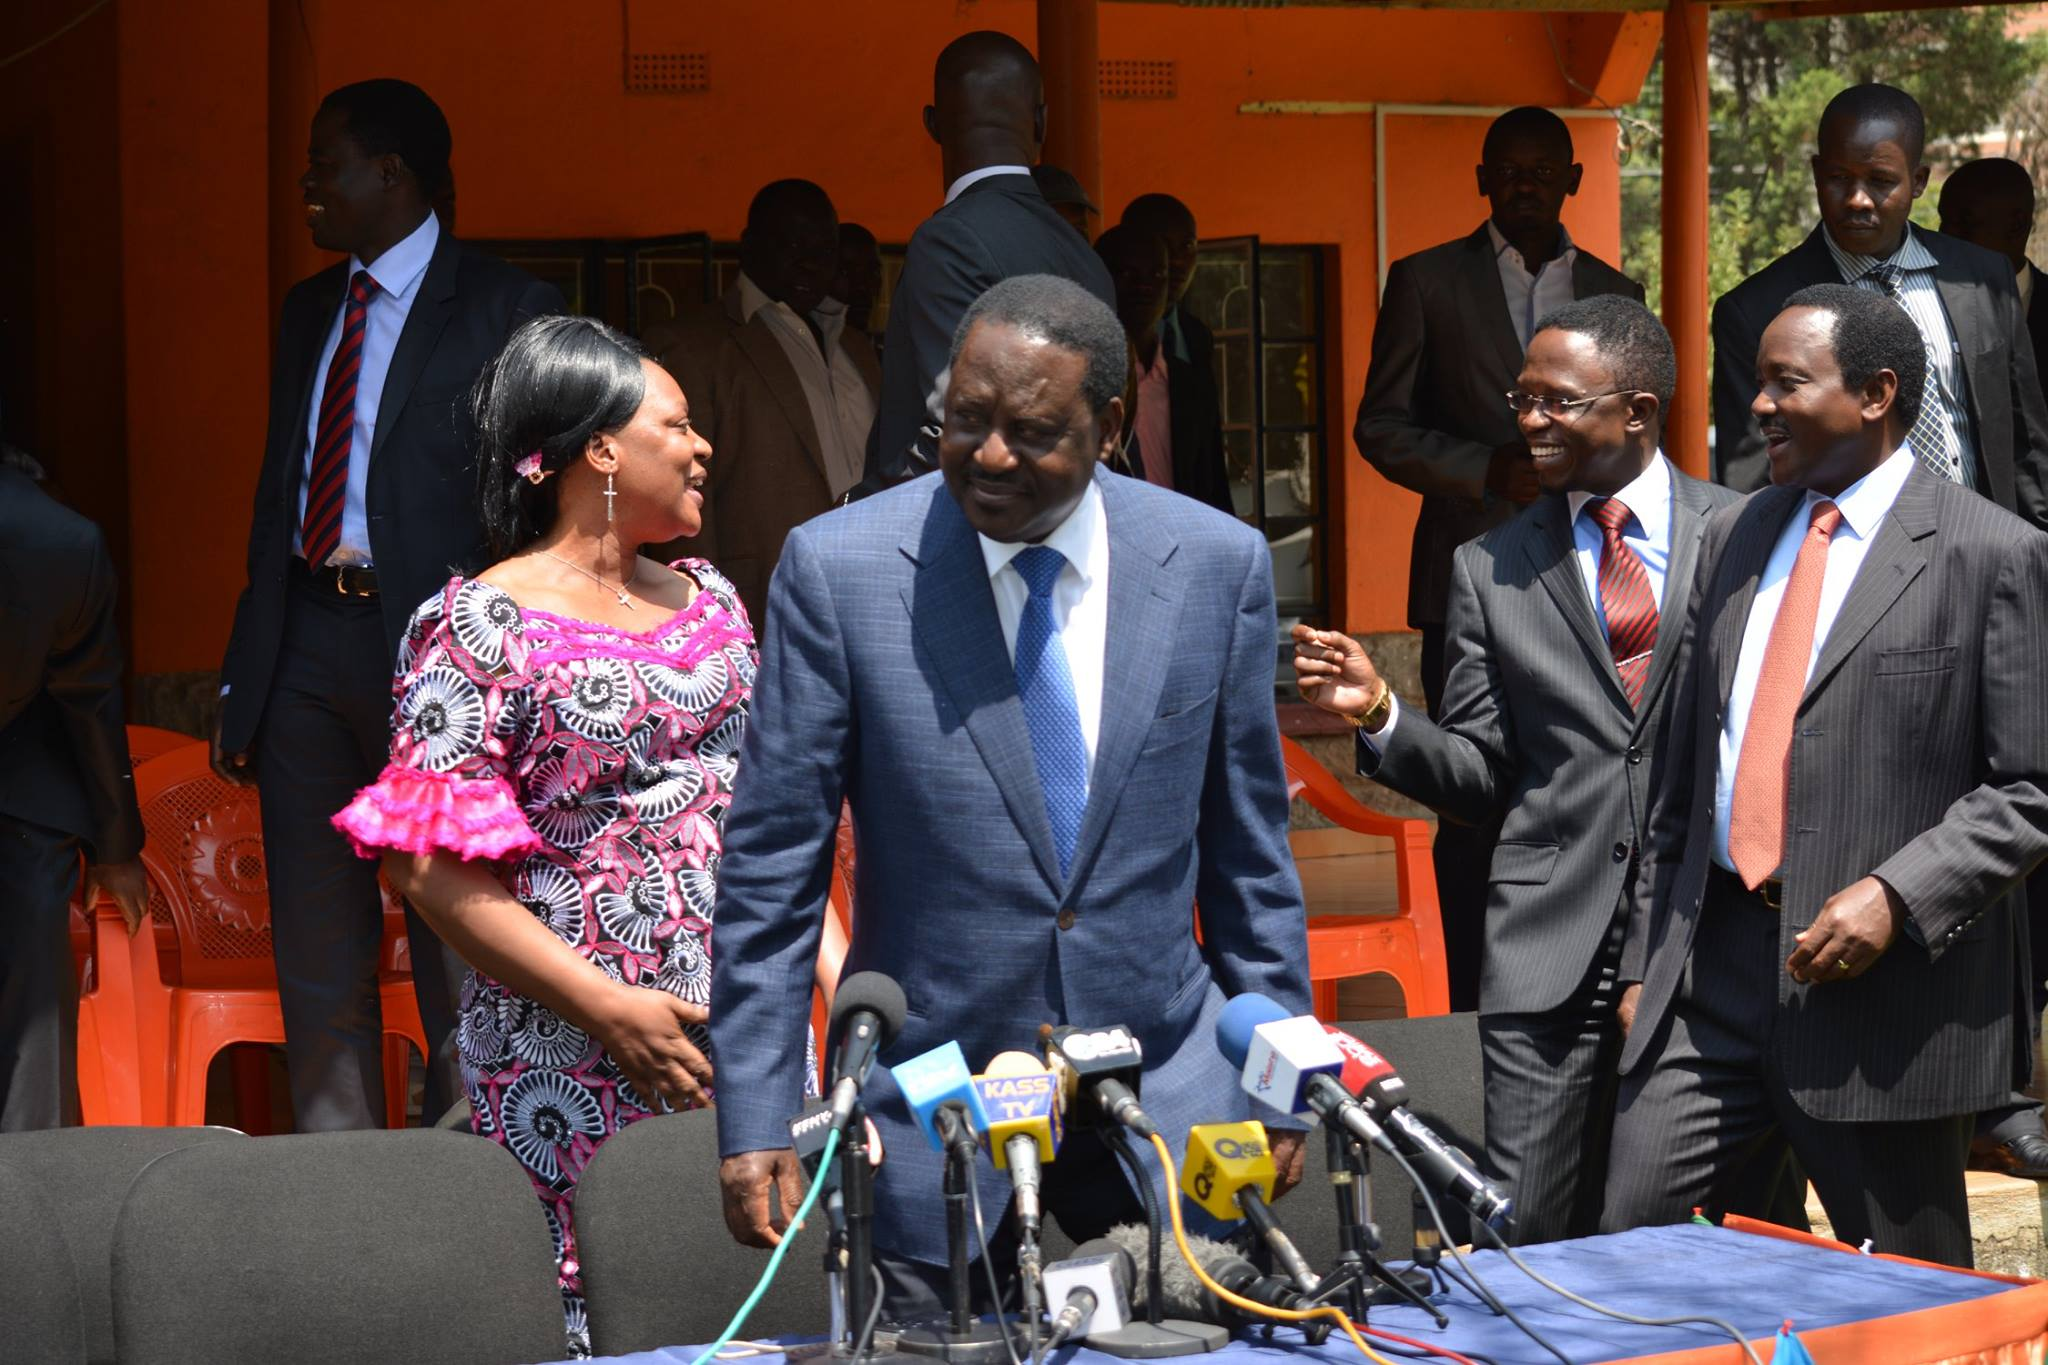 BREAKING NEWS: ALL CORD rallies to go on as planned with ELDORET set for this Friday